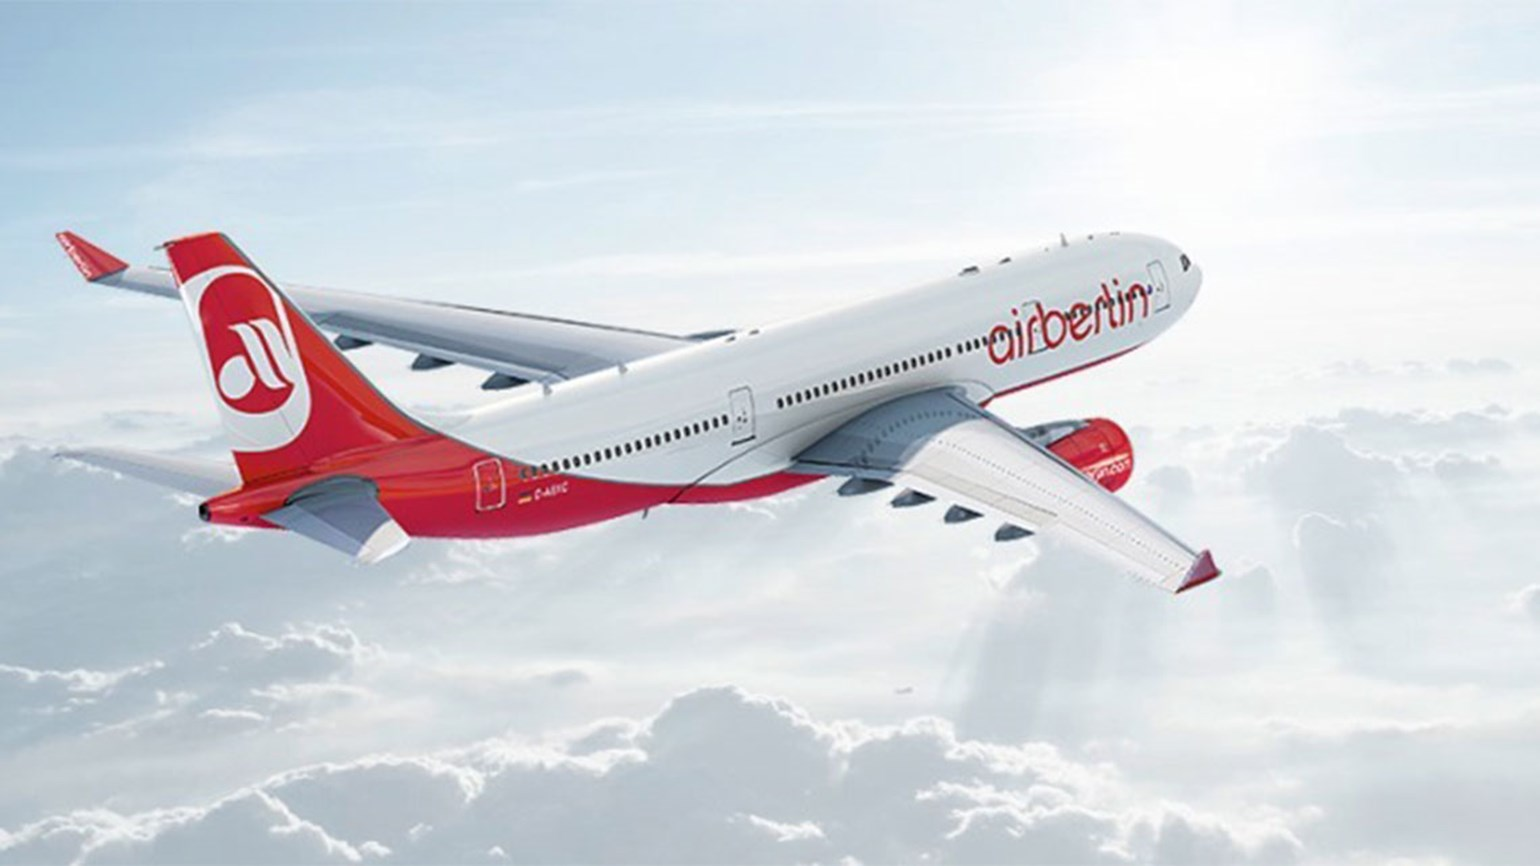 What will become of Air Berlin's U.S. routes?